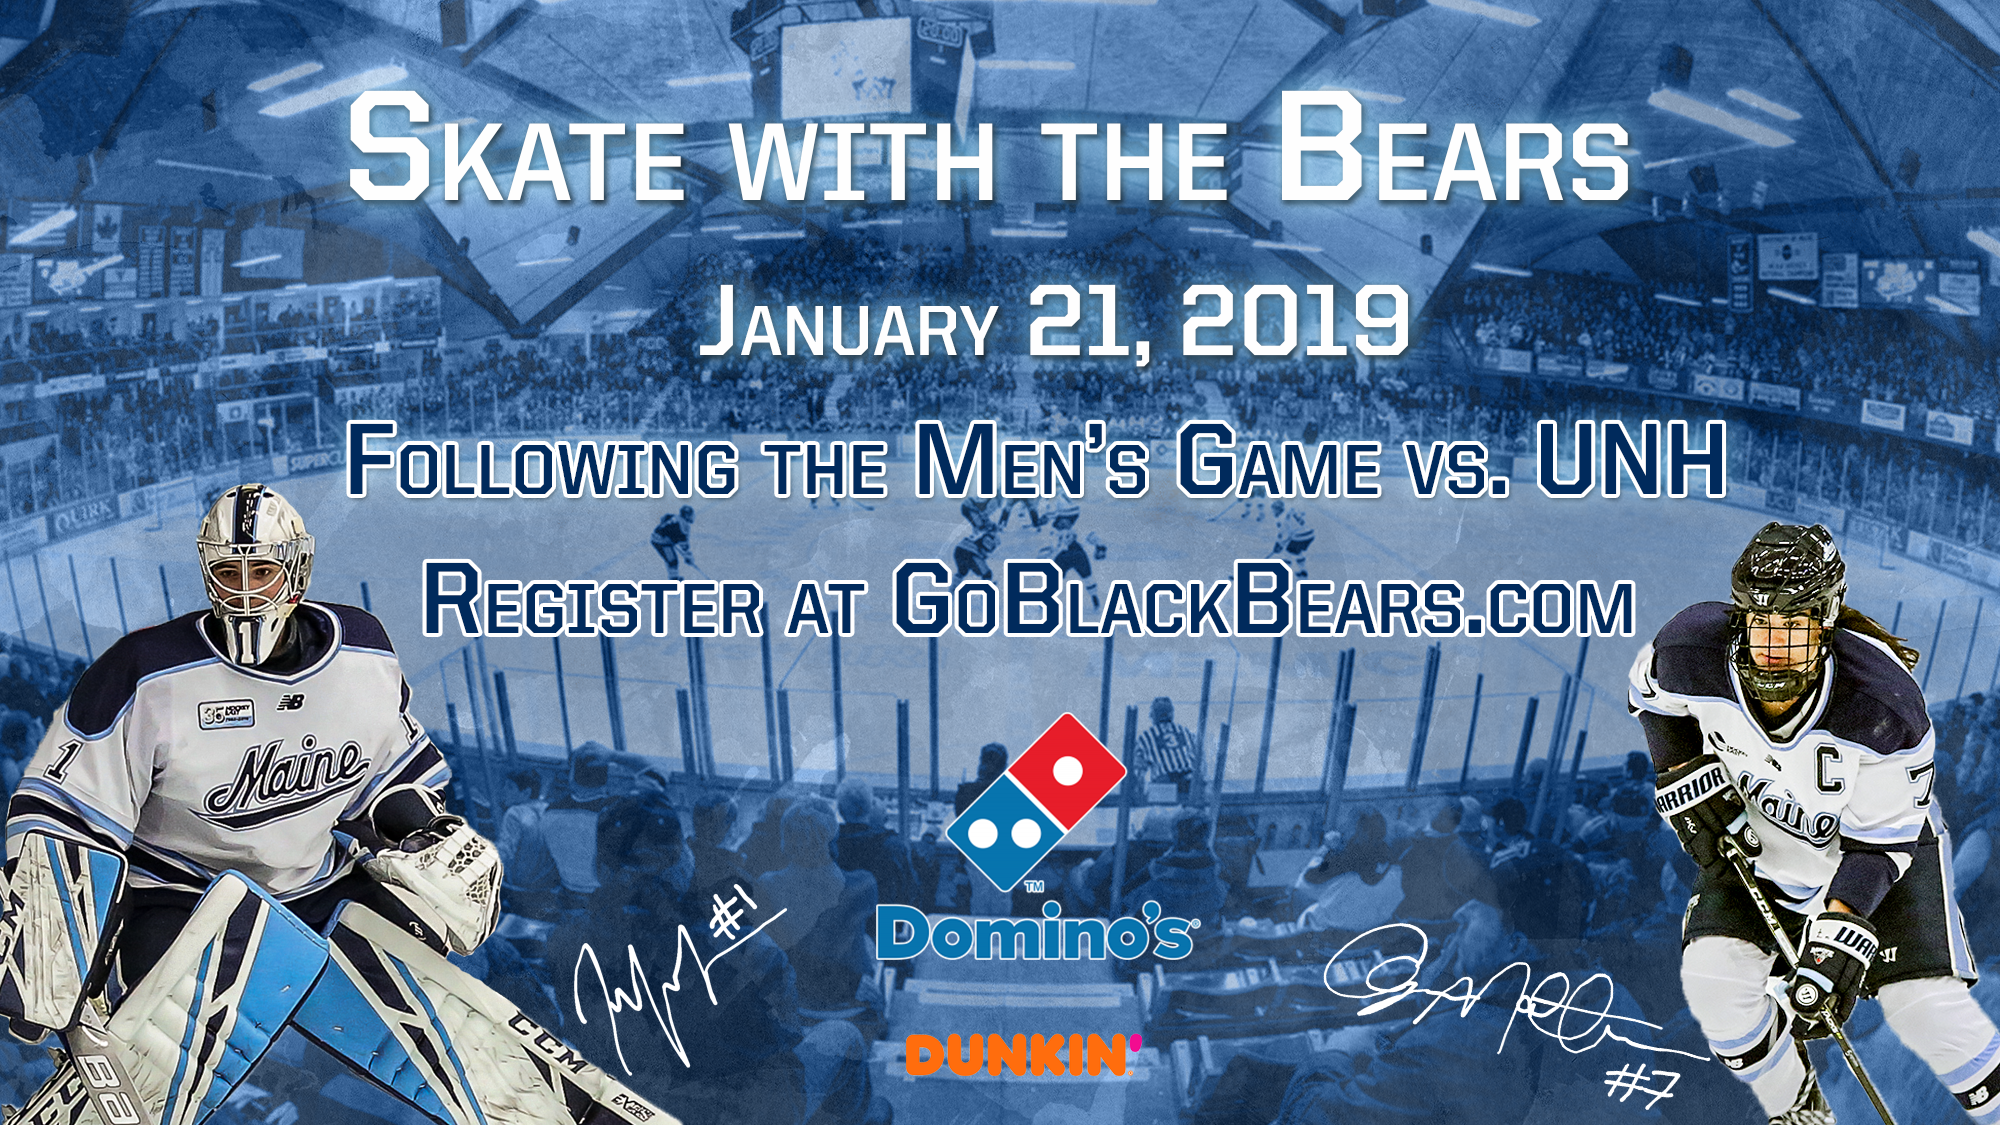 Annual Skate With The Bears Event Set For Jan 21 University Of